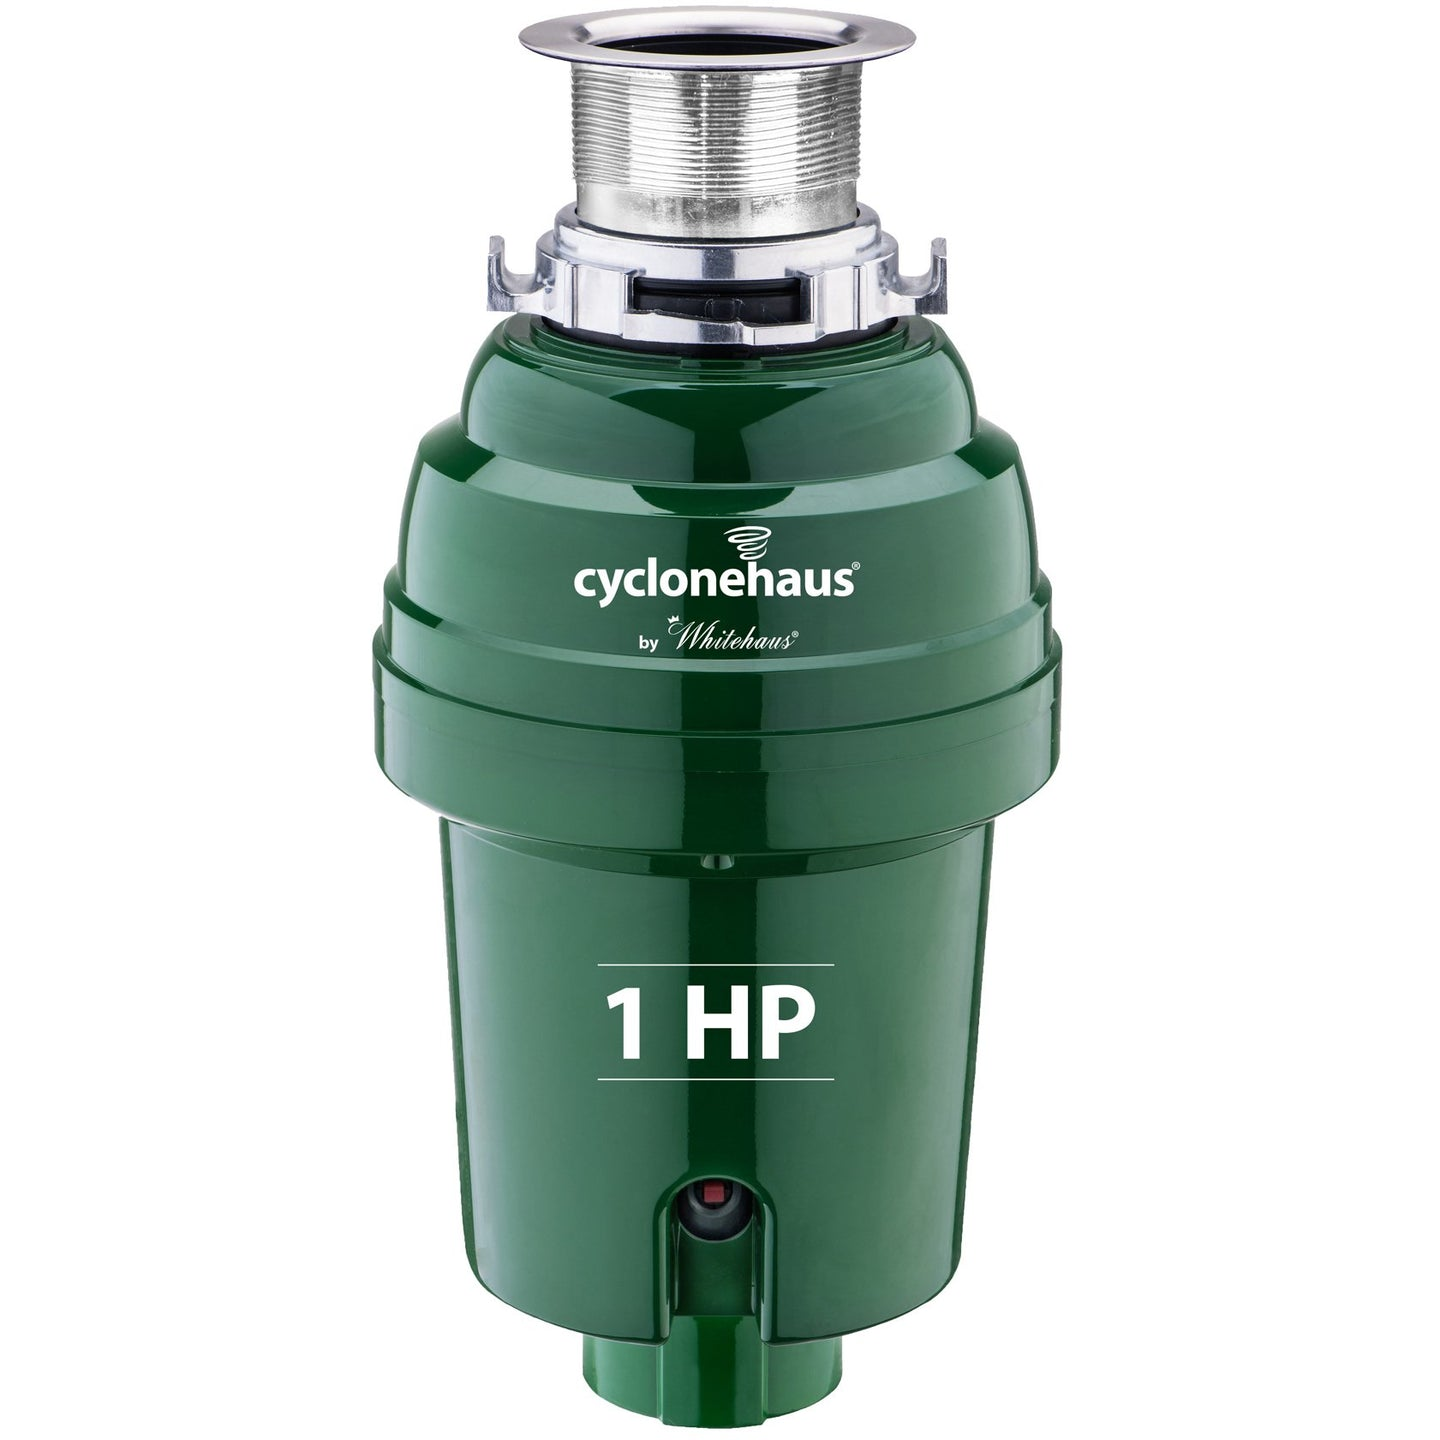 Whitehaus cyclonehaus High Effciency Garbage Disposal with Solid Brass Flange and Quiet Operation